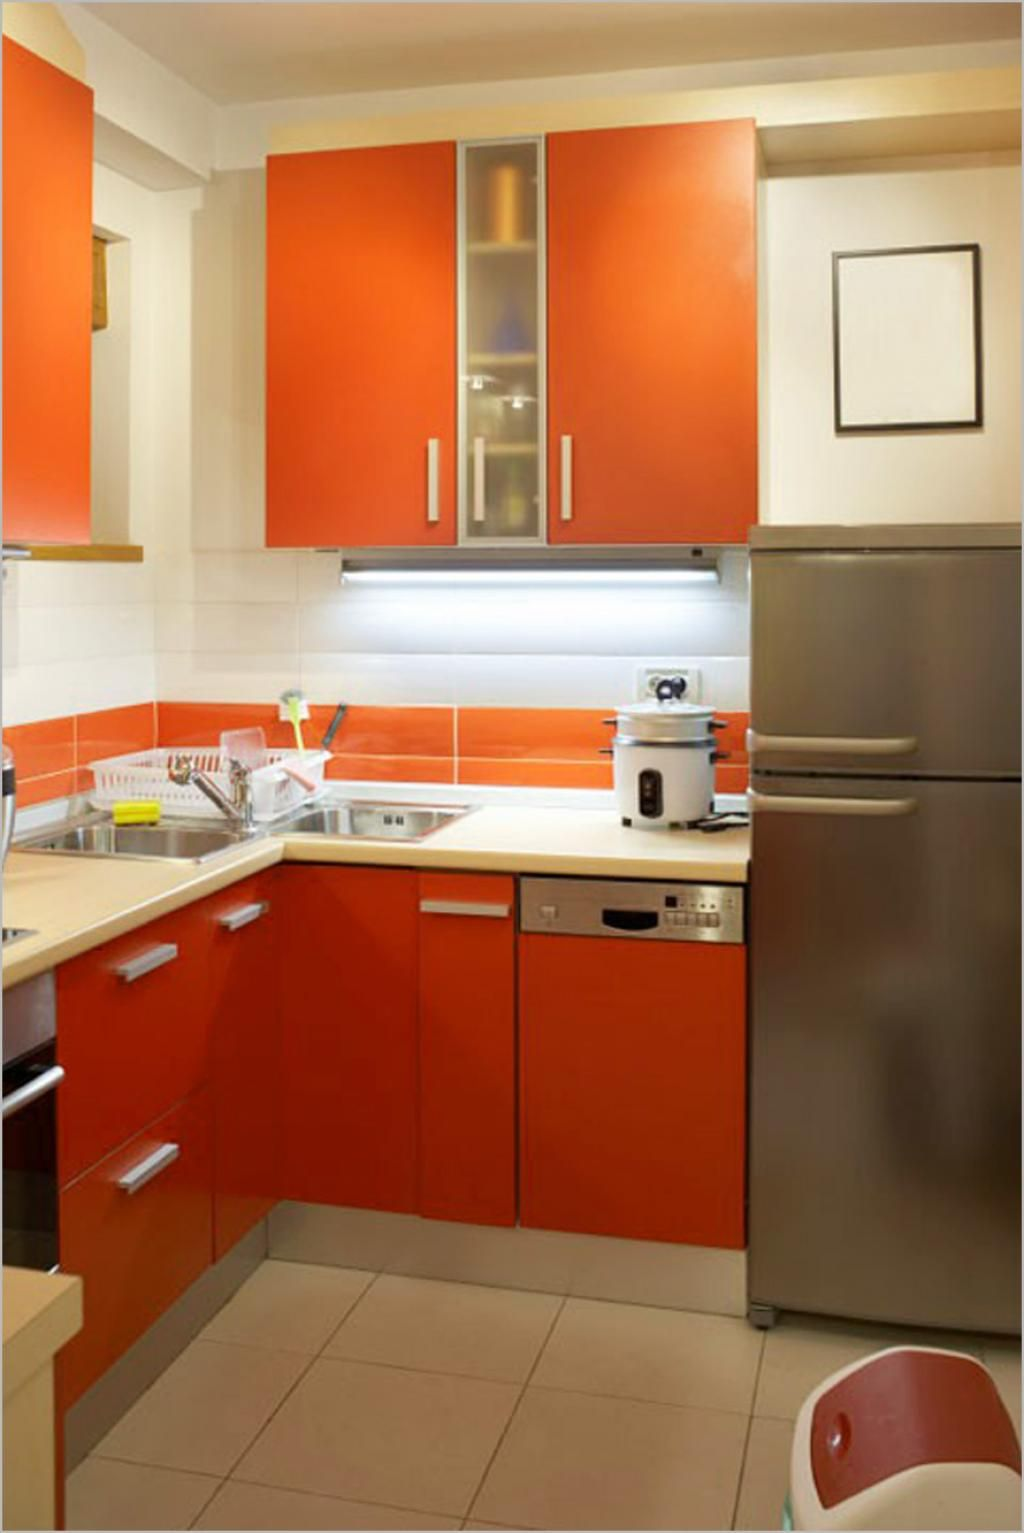 Small Kitchen 21 Cool Small Kitchen Design Ideas Kitchen Small Small Kitchens